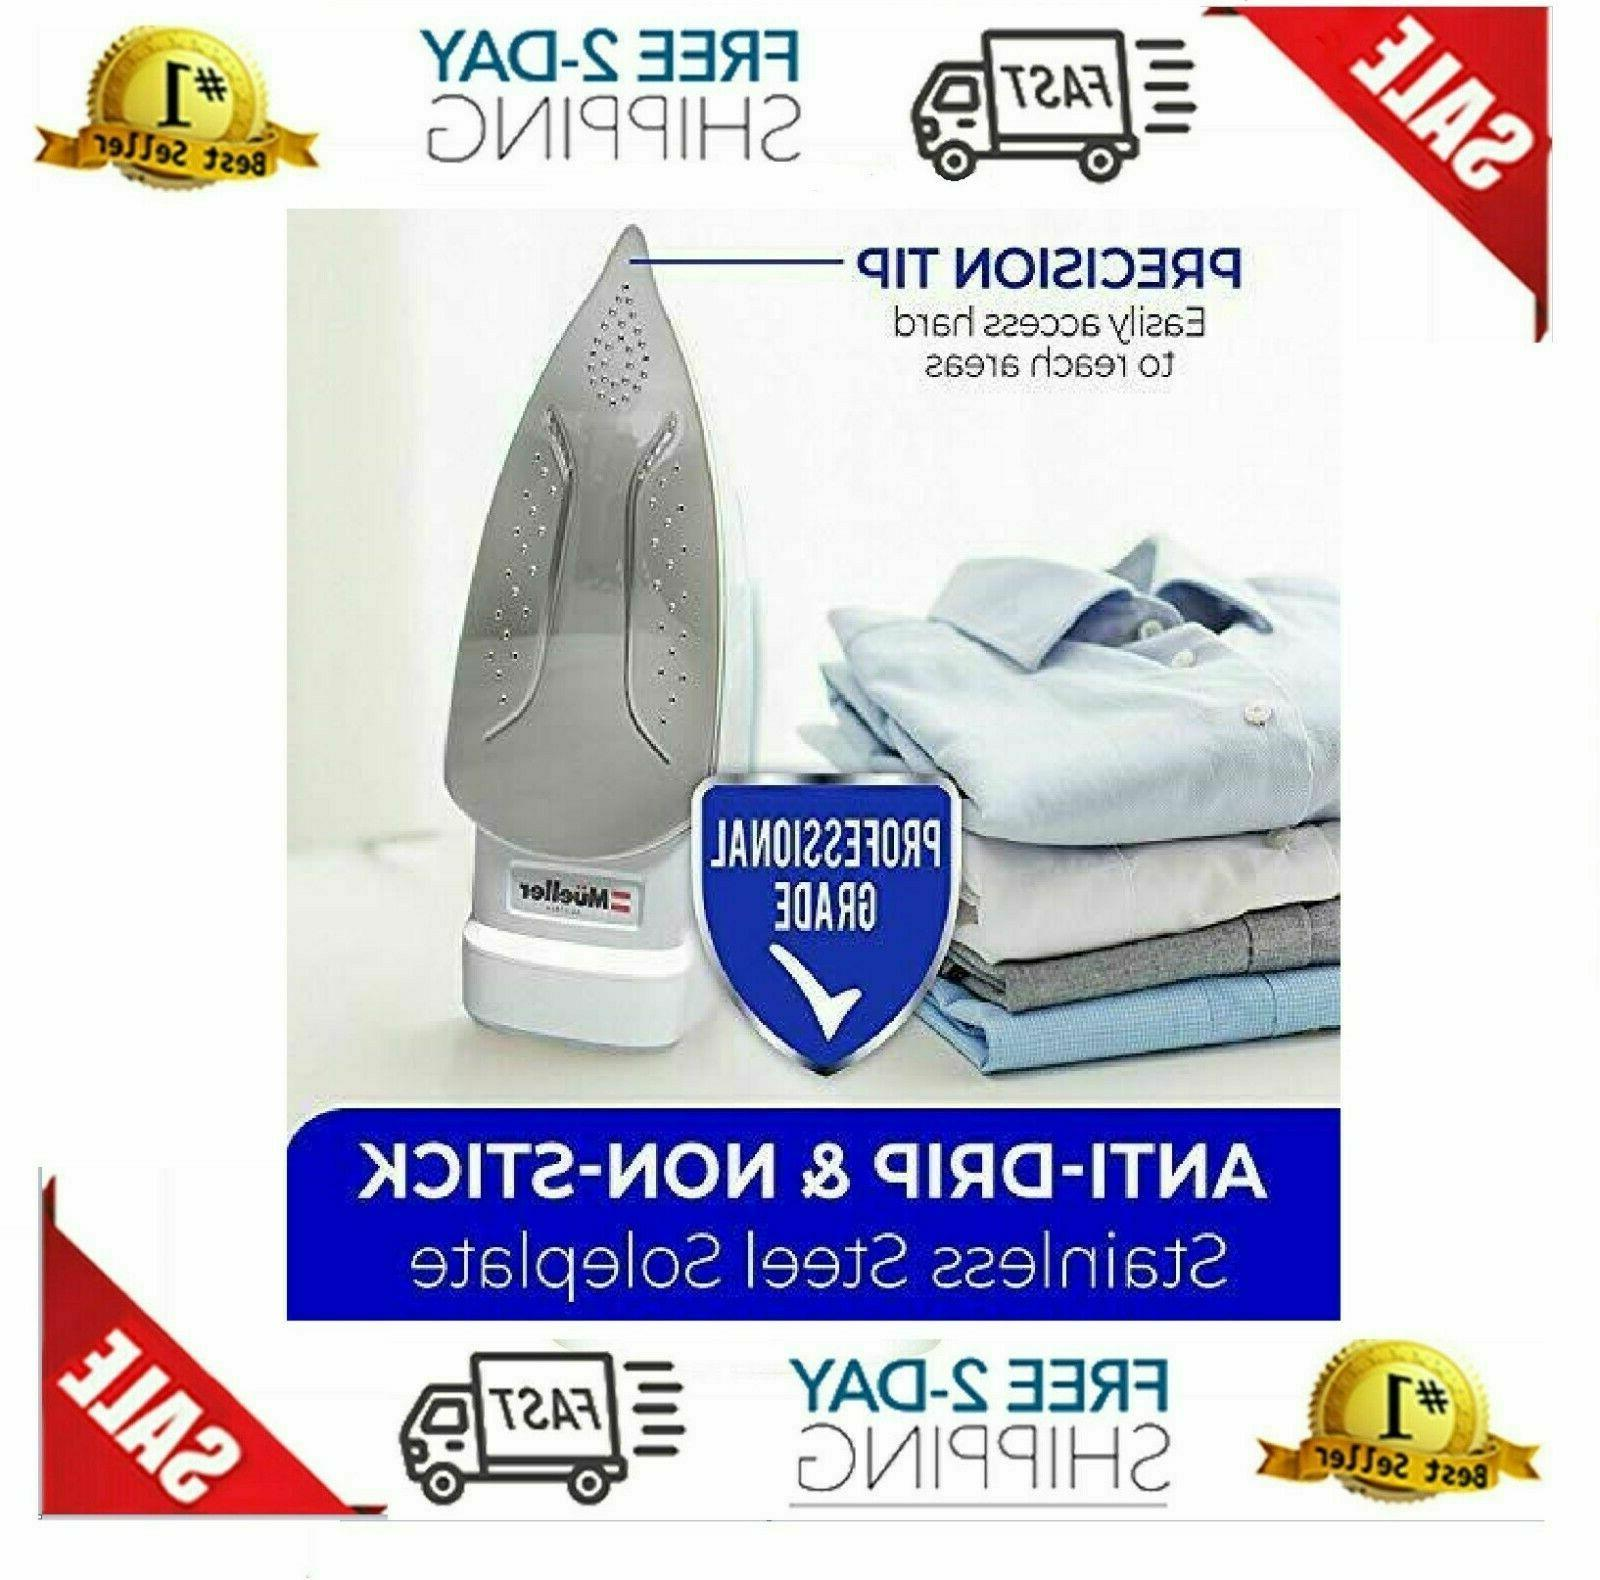 Mueller Professional Steam Iron, Retractable Cord for Easy